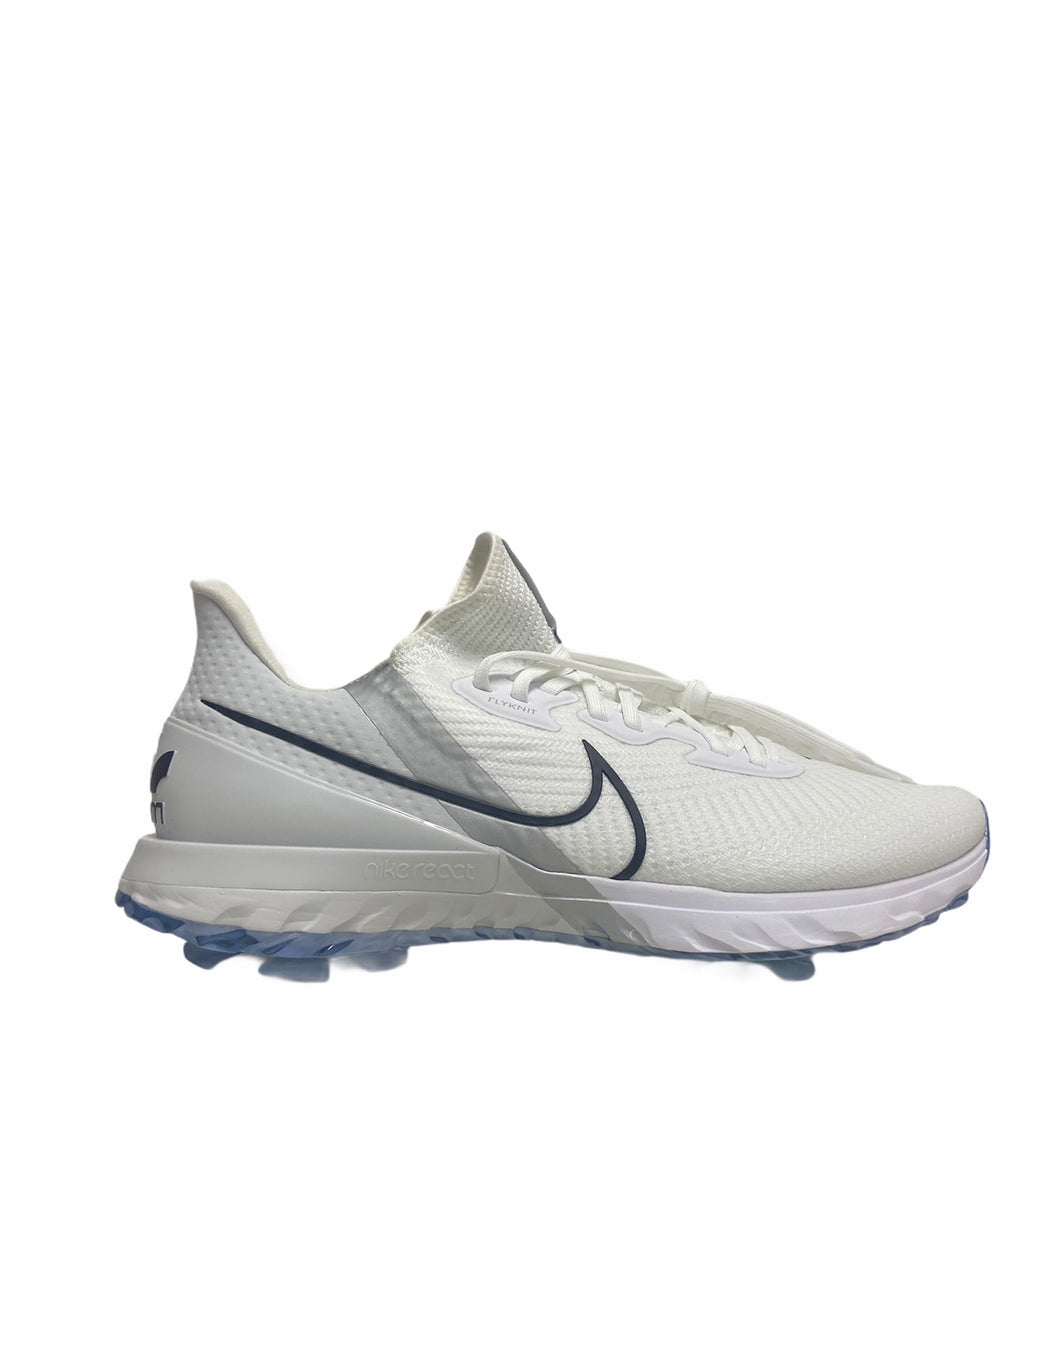 Nike Air Zoom Infinity Tour